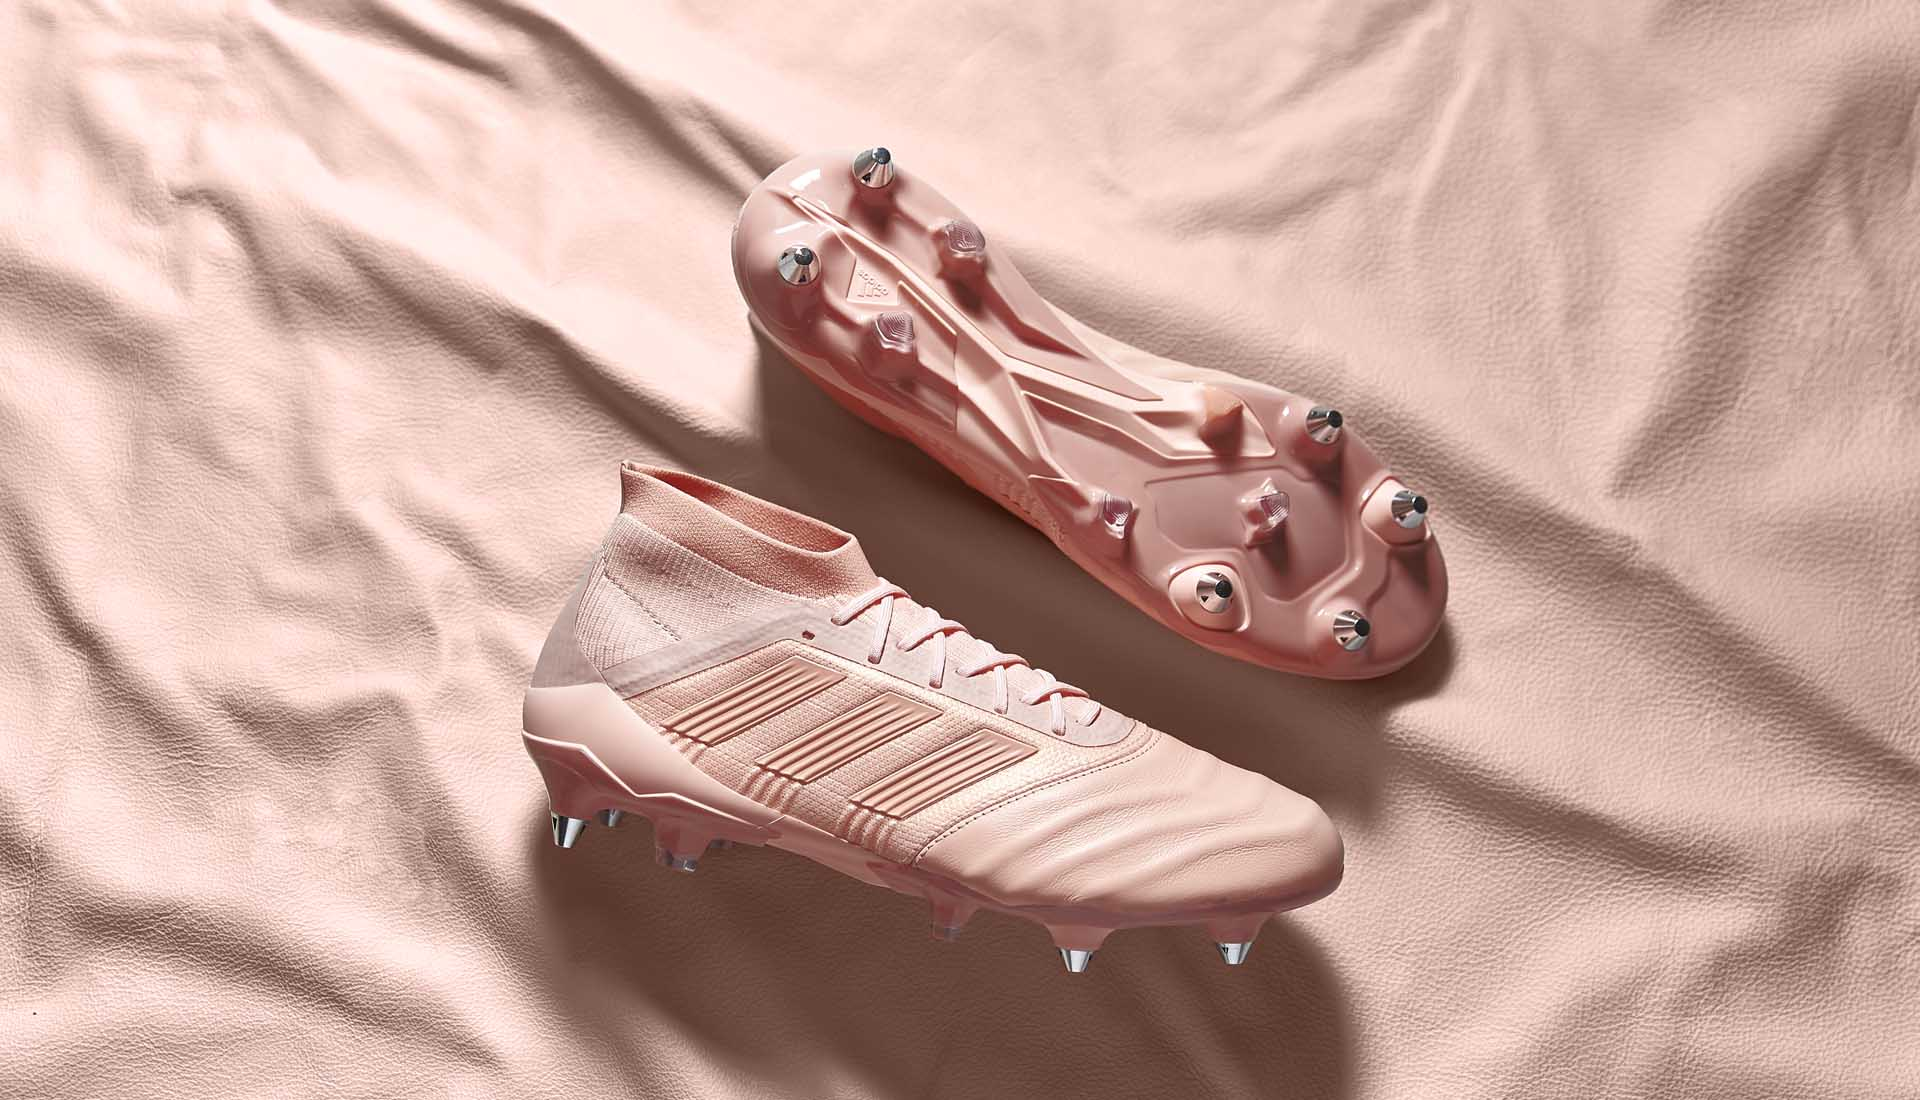 b948dc9fa adidas Launch the Predator 18.1 Leather Collection - SoccerBible.